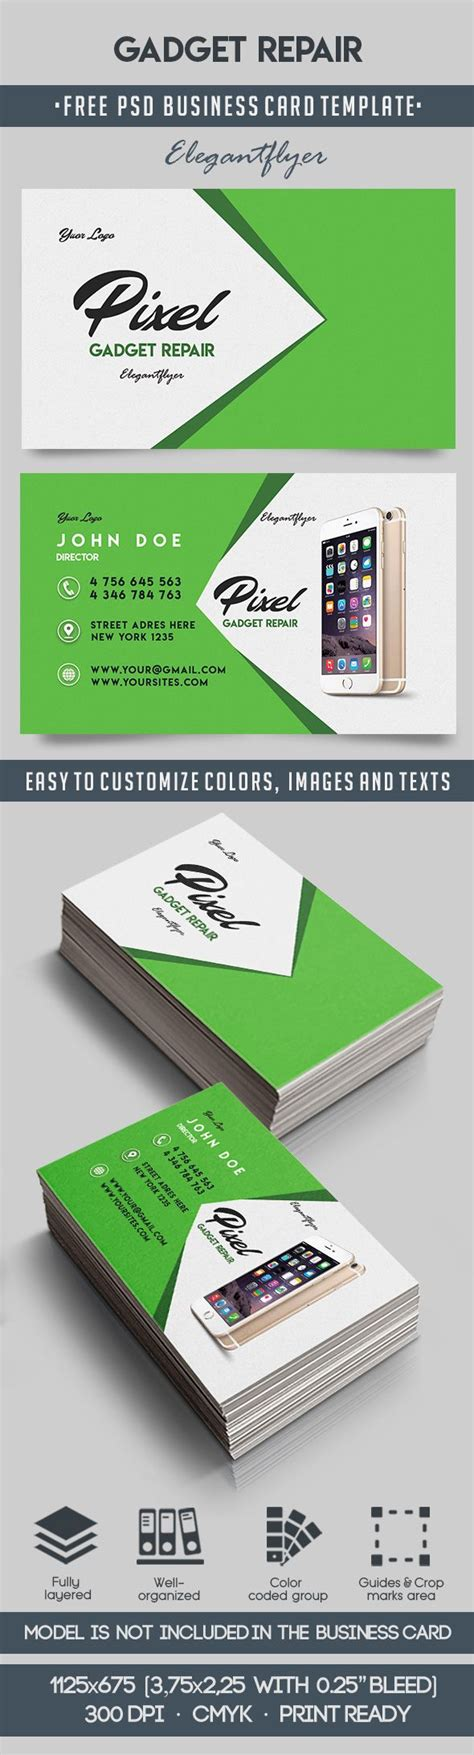 Business Card 8 Sheet Printing Template Psd by Gadget Repair Free Business Card Templates Psd By